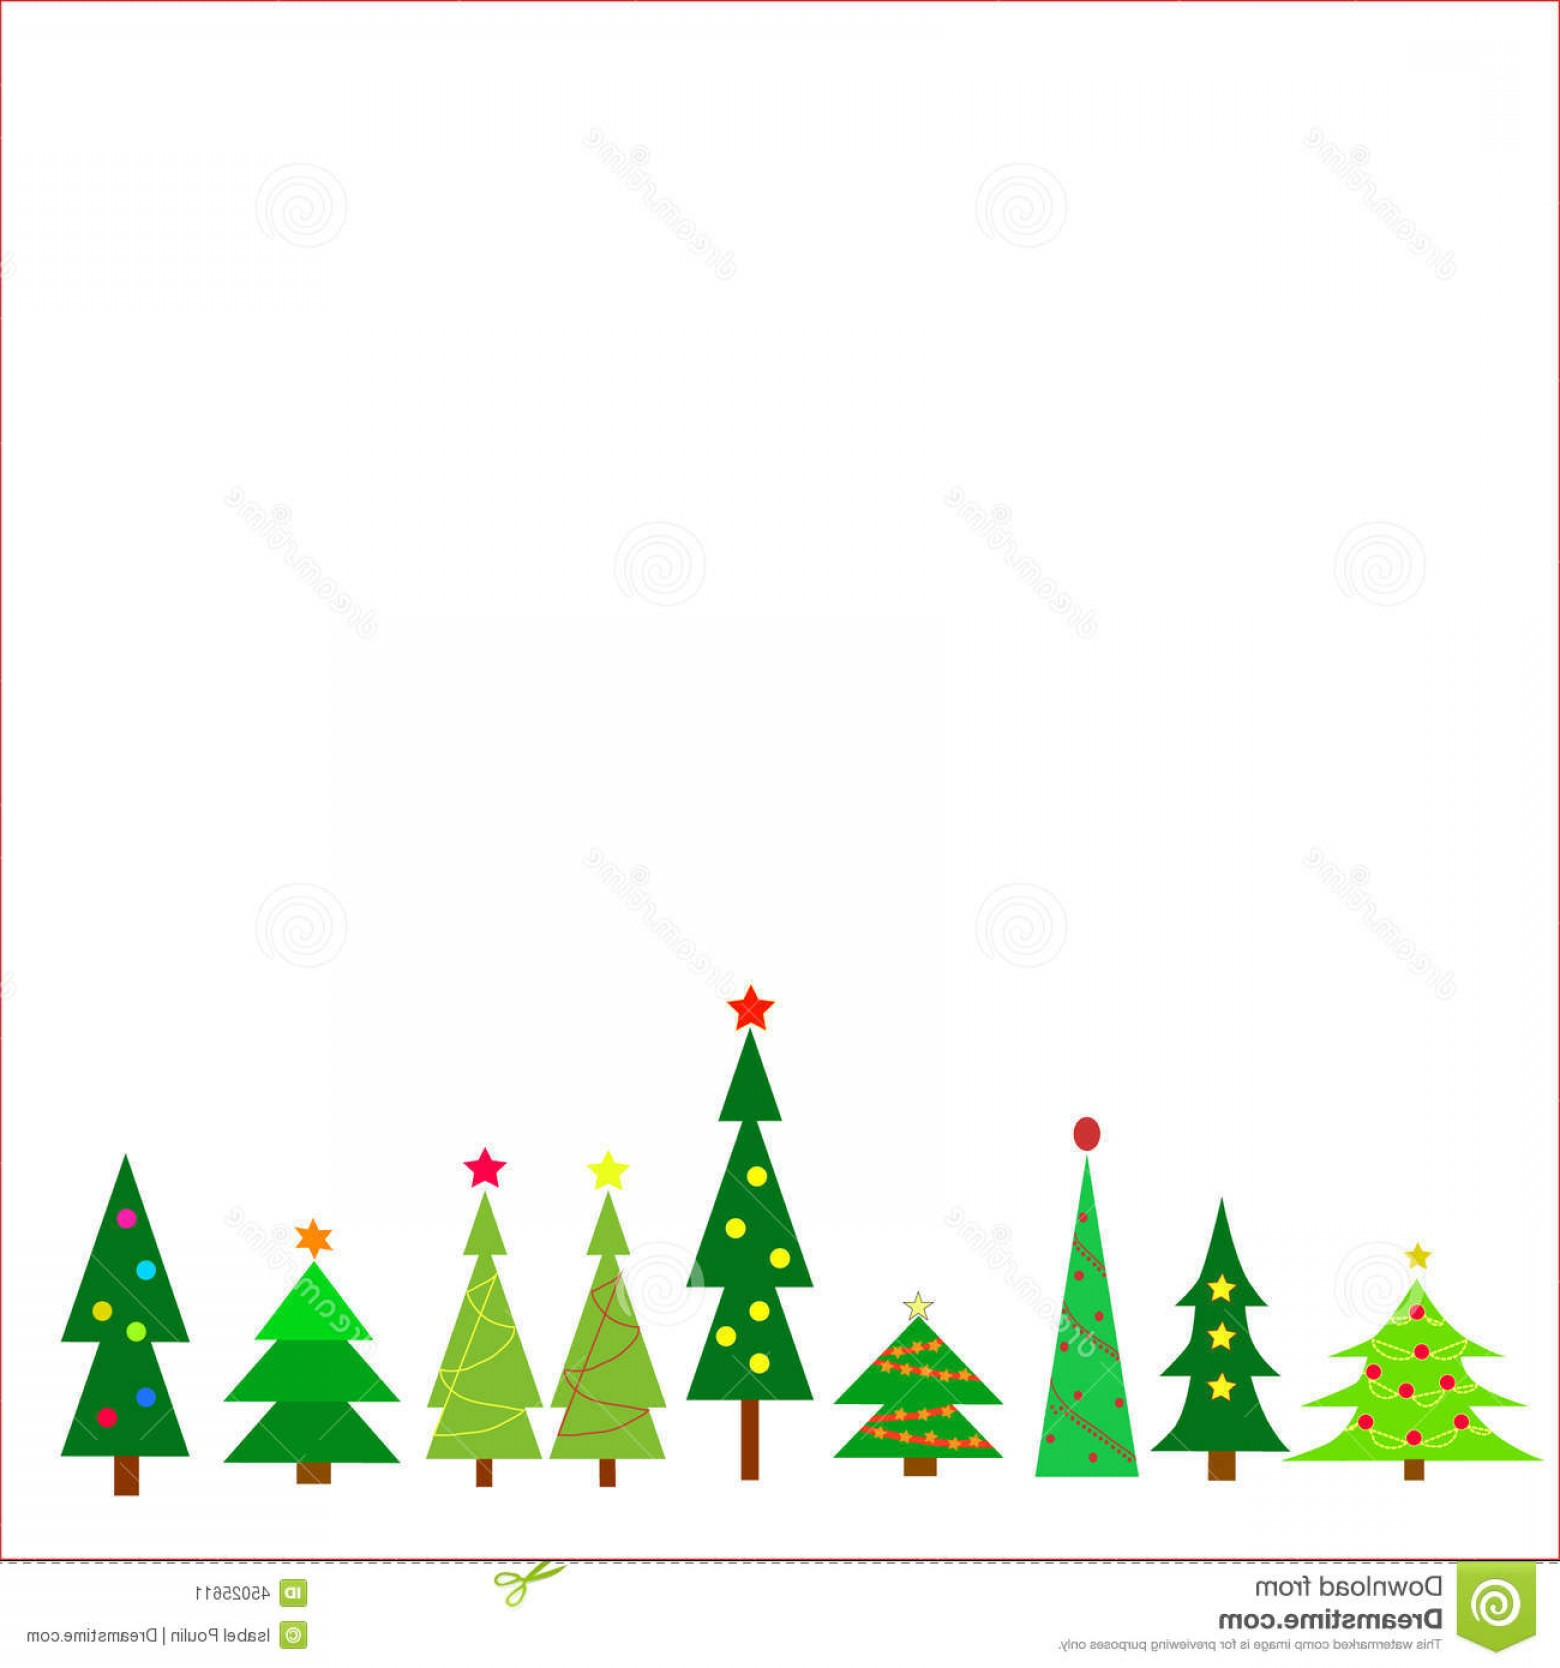 Christmas Tree Art Large Vector Format: Stock Illustration Christmas Trees Row Different White Background Eps Vector Format Image